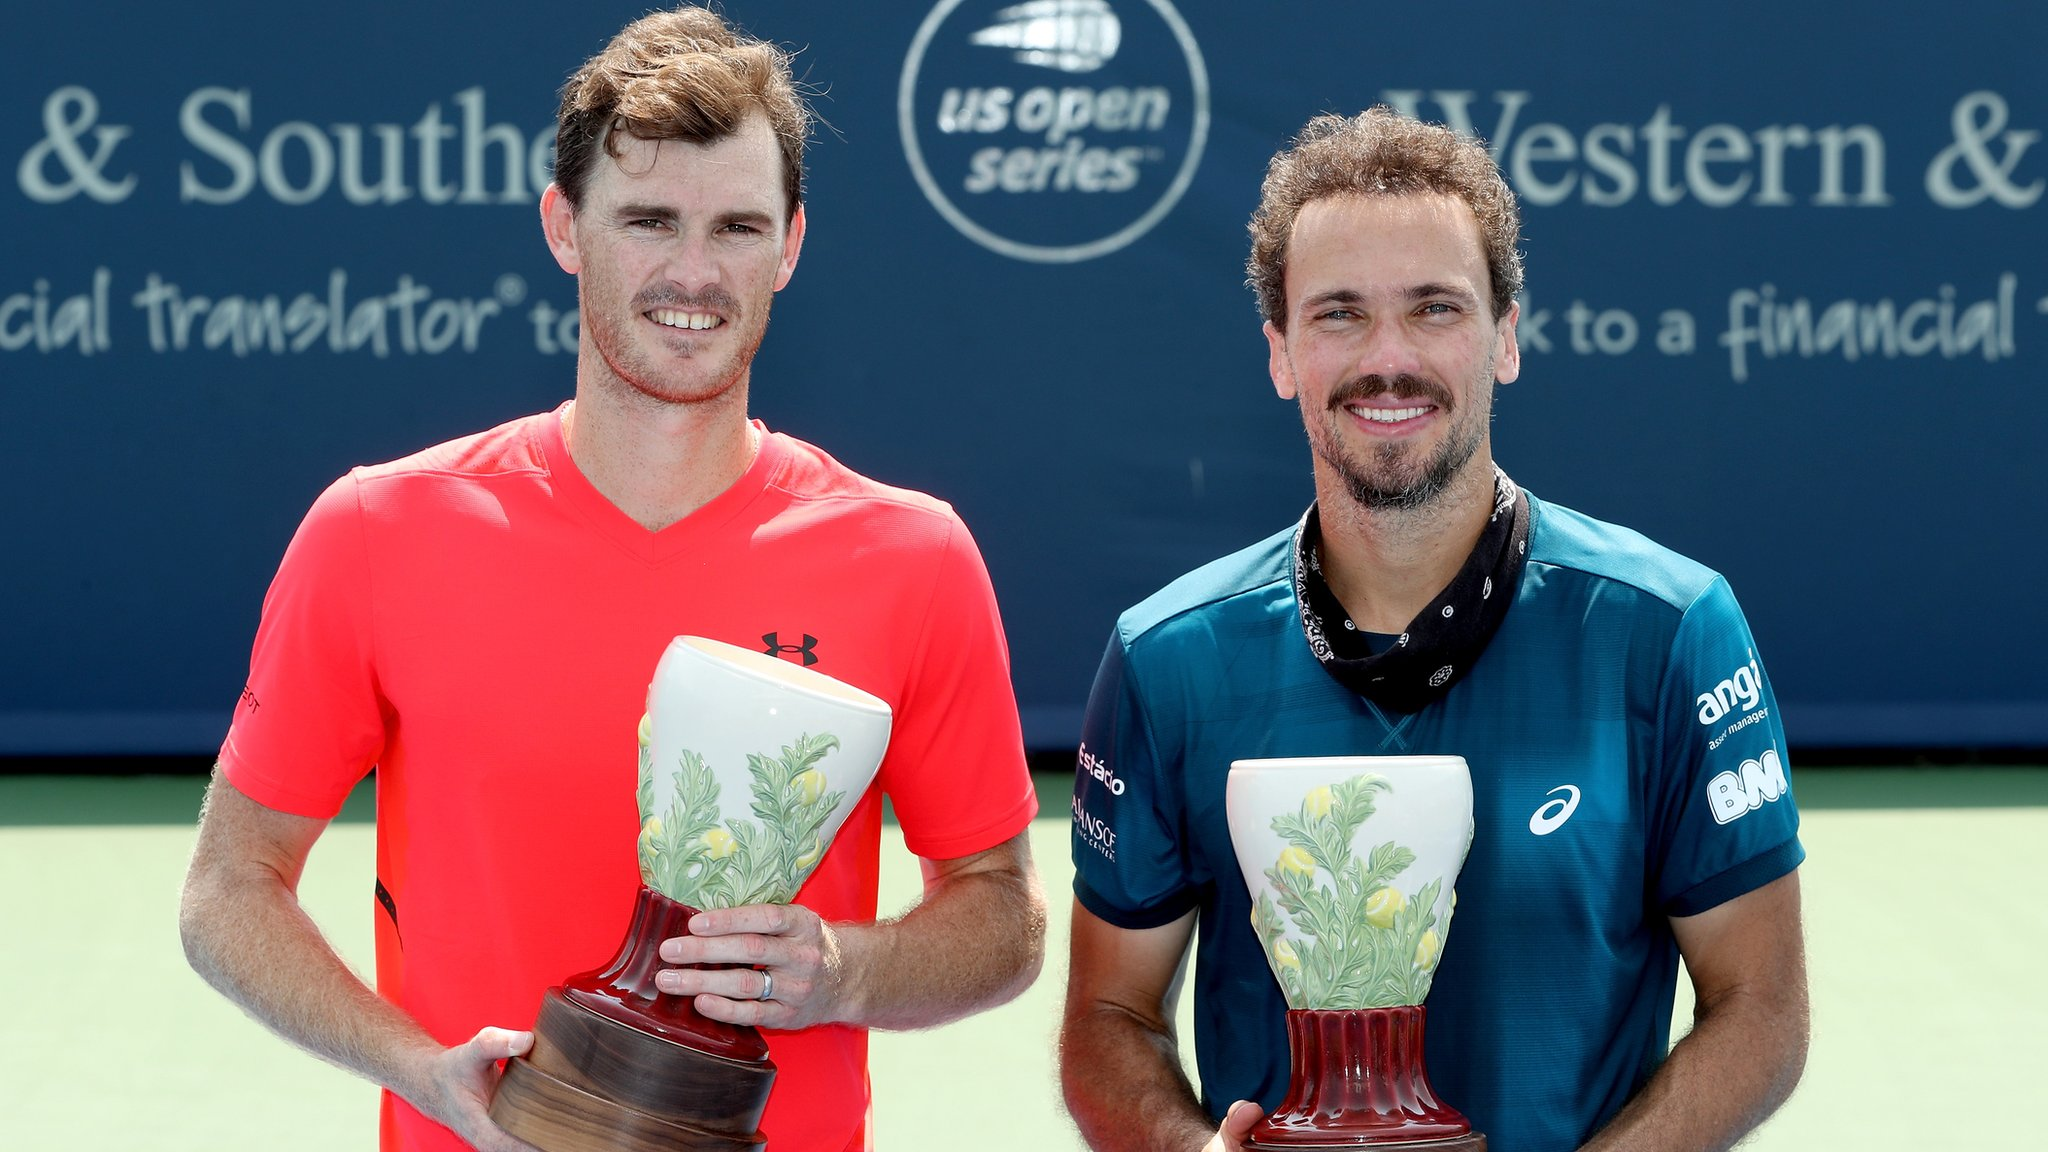 Cincinnati Masters: Jamie Murray and Bruno Soares win doubles final